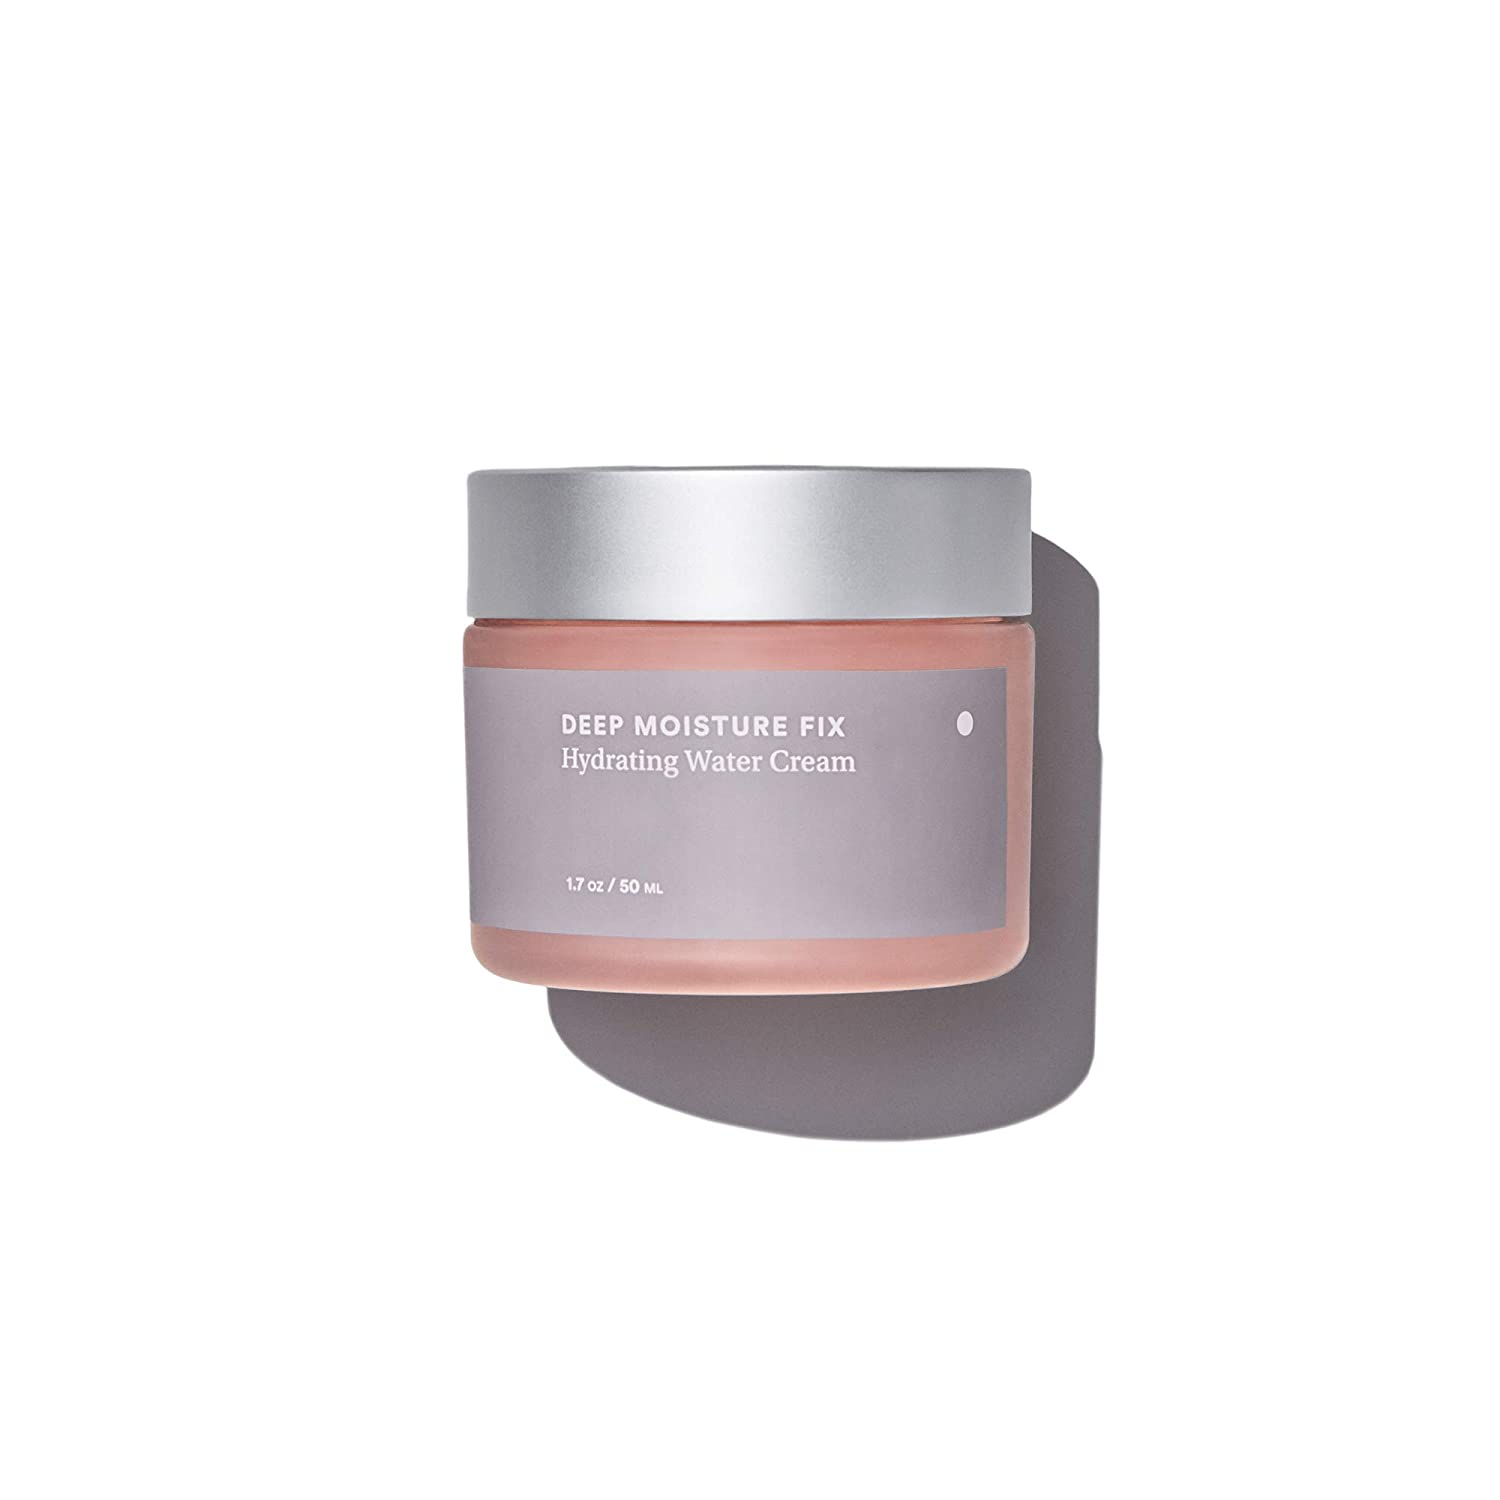 Care Skincare Deep Moisture Fix Hydrating Water Cream- Gel Moisturizer for face, ultra hydrating with Hyaluronic Acid + Aloe + Vitamin C & E + Caffeine, plumps & smooths skin. Day & Night Cream.